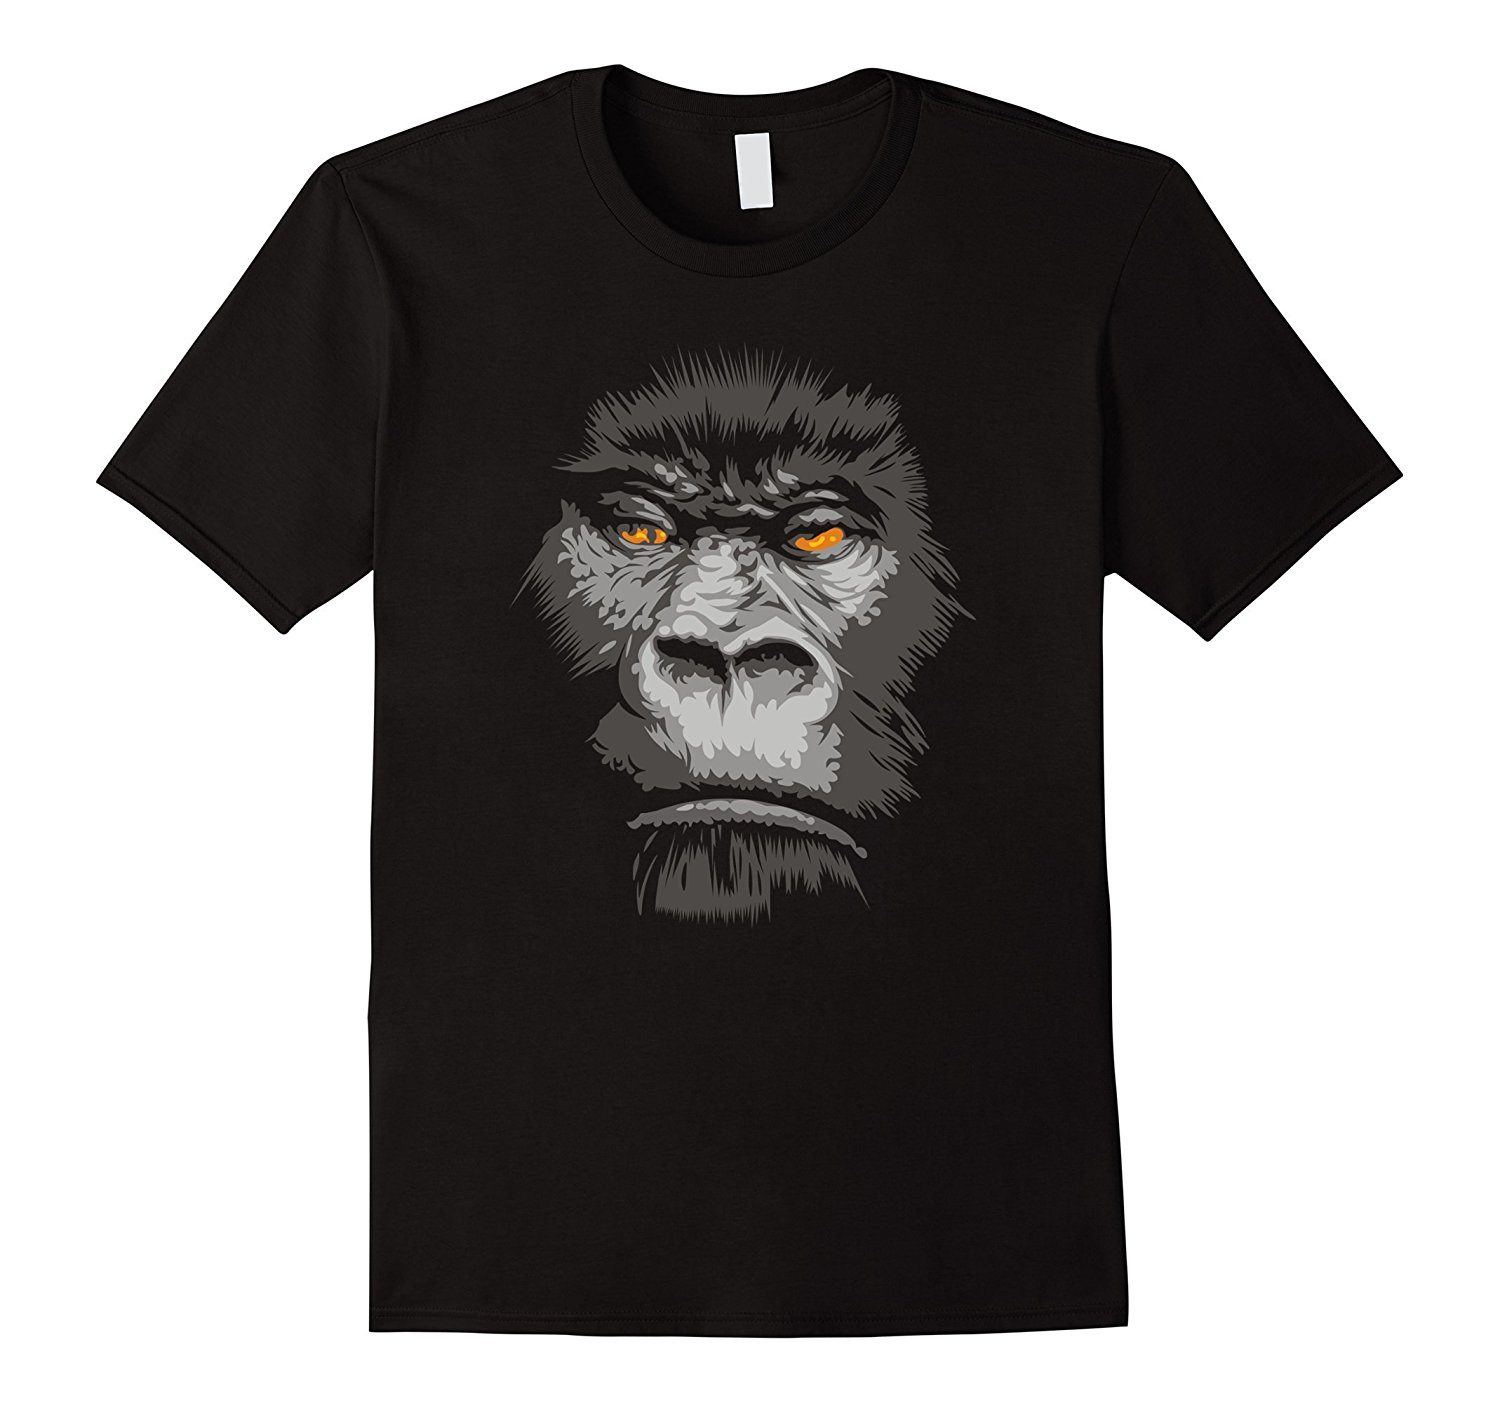 Cool Real Apes Face T-shirt Black Monkey Faces Tshirt